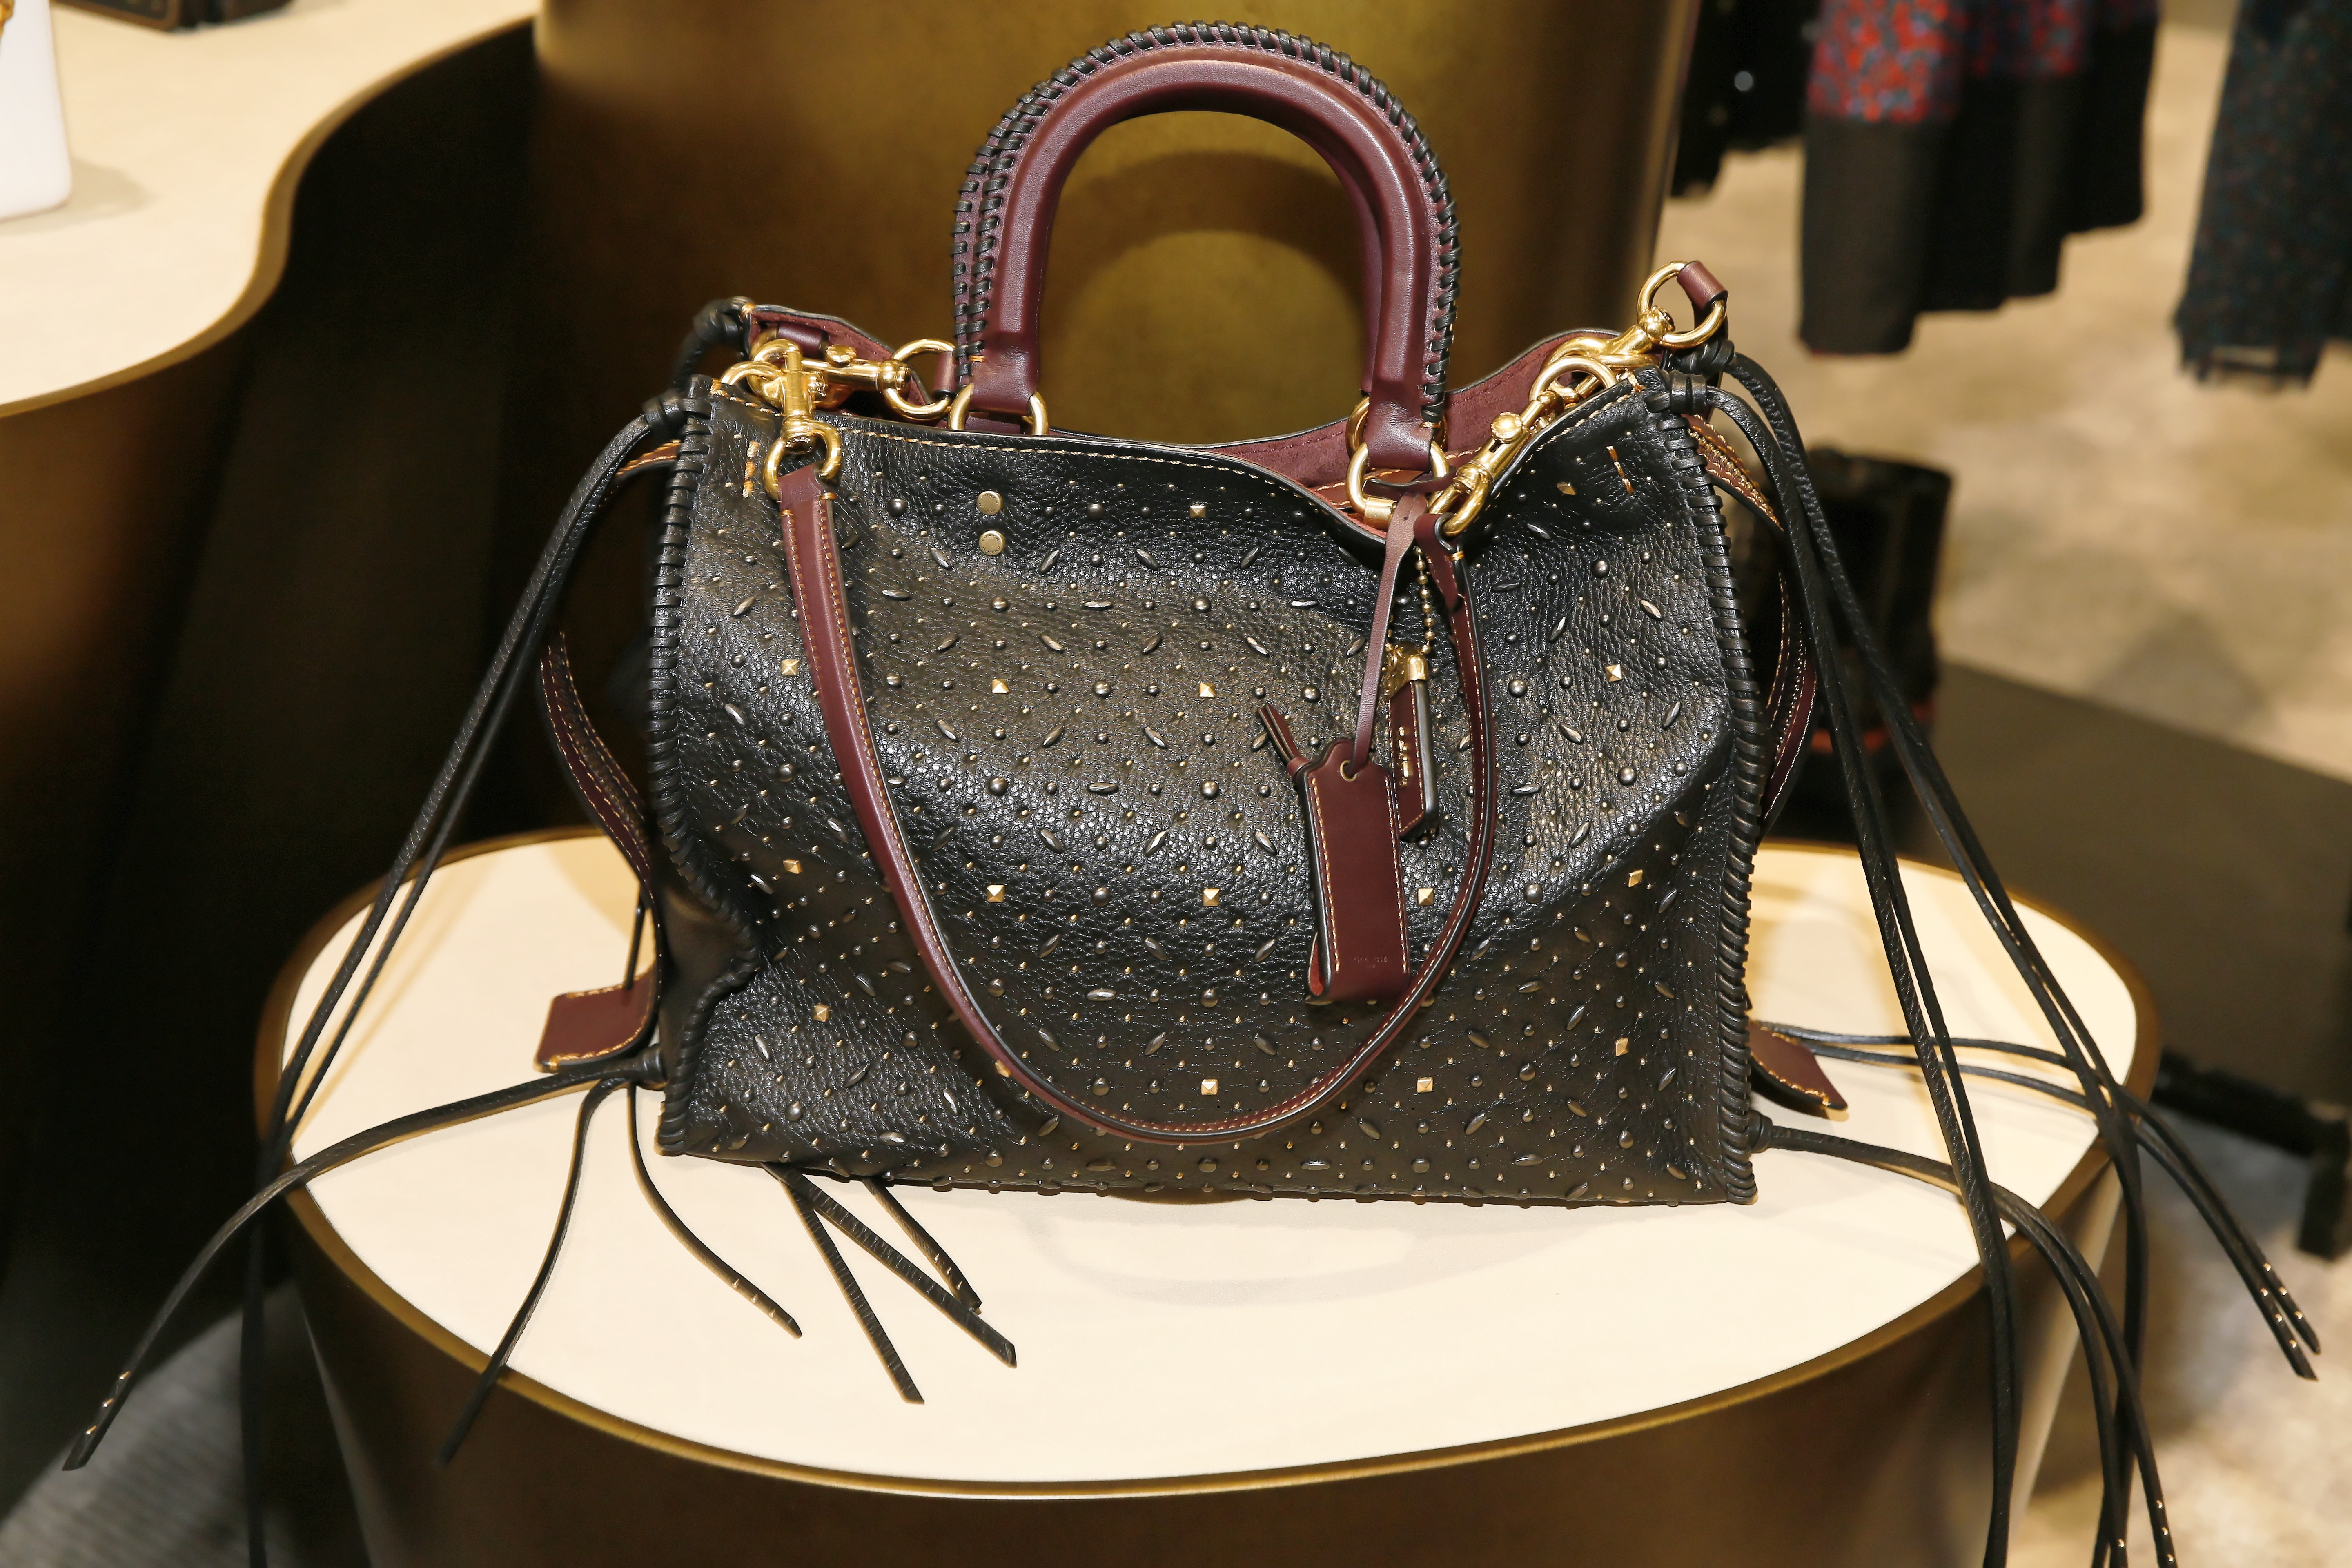 """""""Whiplash"""" rivets rogue bag pebble leather $1,200 from Coach's 1941 Pre Fall 2016 collection at the Coach South Coast Plaza boutique. (Photo by Ryan Miller/Getty Images for COACH)"""